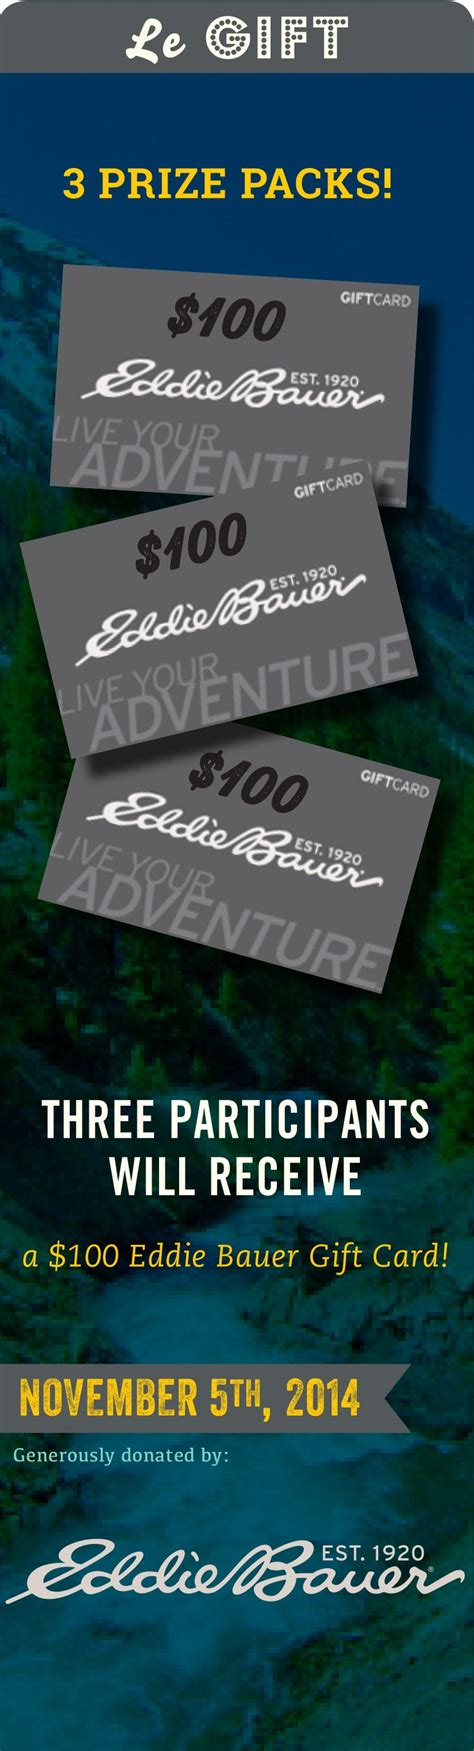 Eddie Bauer Gift Card - 1629 best images about awesome finds on pinterest gift cards us travel and iphone cases